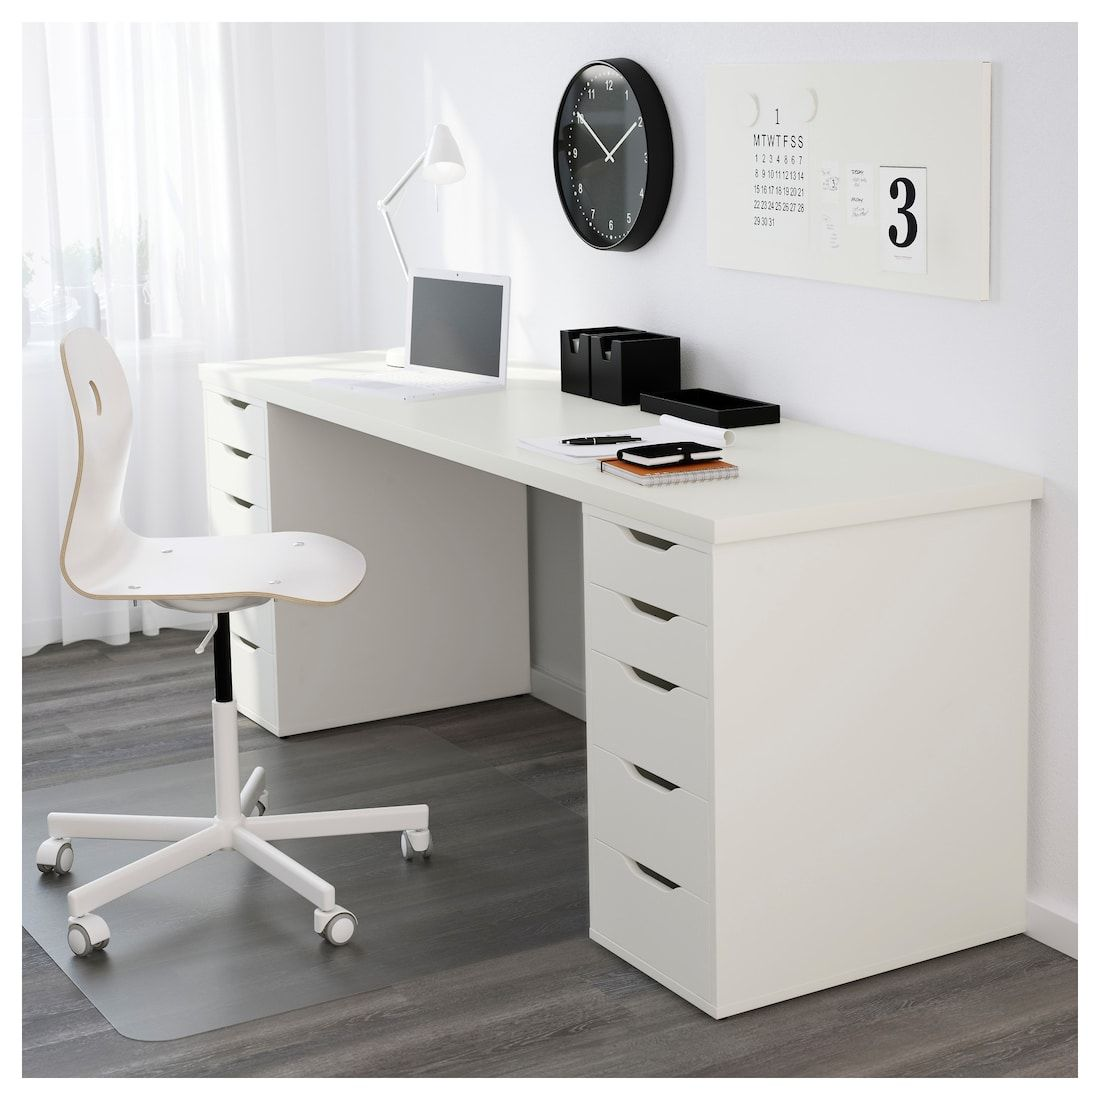 Linnmon Alex Table White 78 3 4x23 5 8 Ikea Cheap Office Furniture Home Office Design Drawer Unit